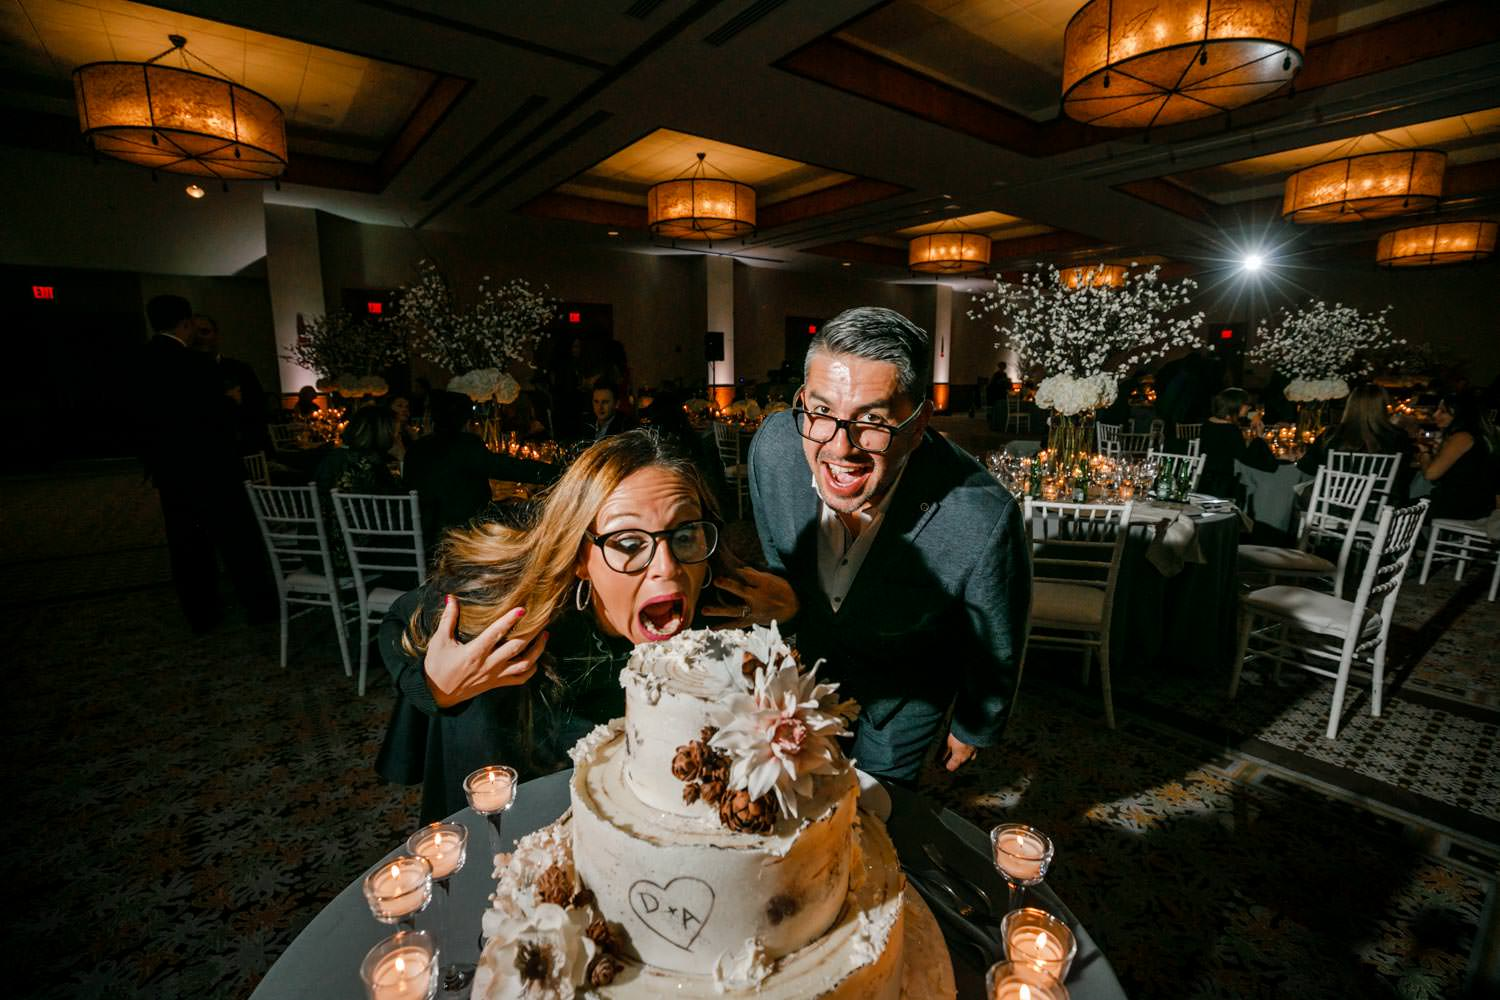 guests acting silly pretending to take a bite out of a wedding cake